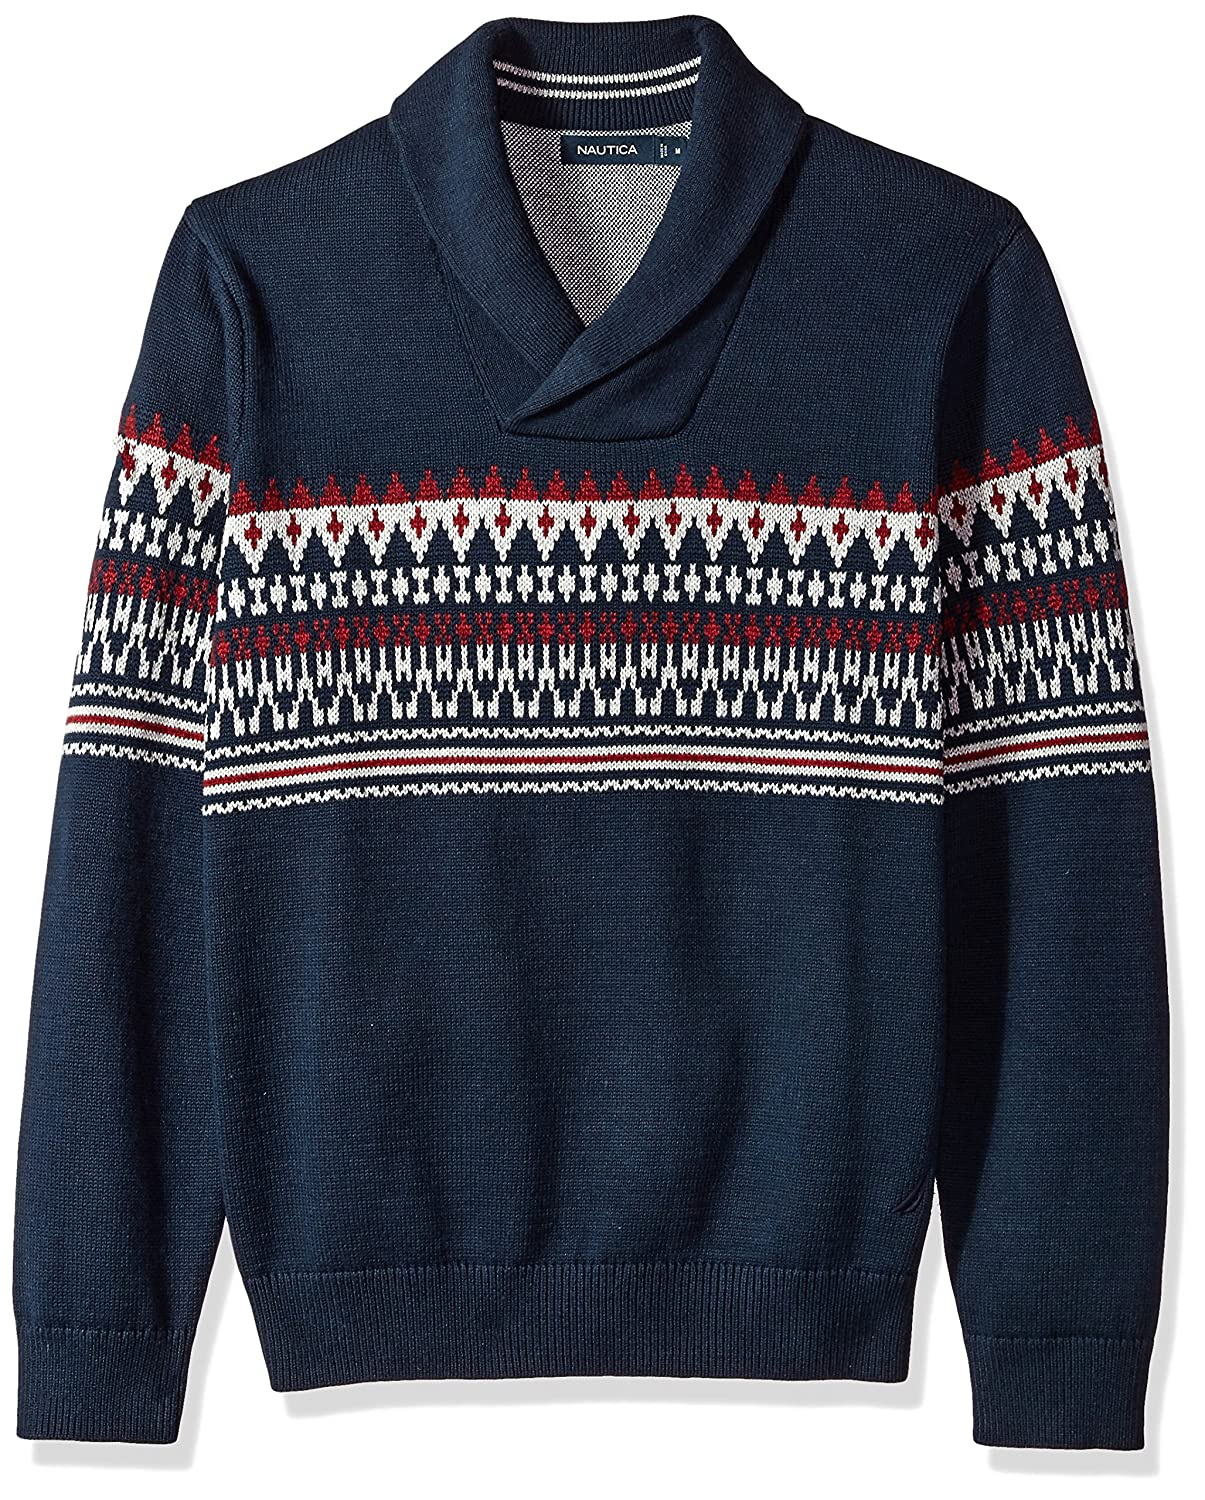 1920s Mens Sweaters, Pullovers, Cardigans Nautica Mens Long Sleeve Crew Neck Fairisle Sweater $89.50 AT vintagedancer.com